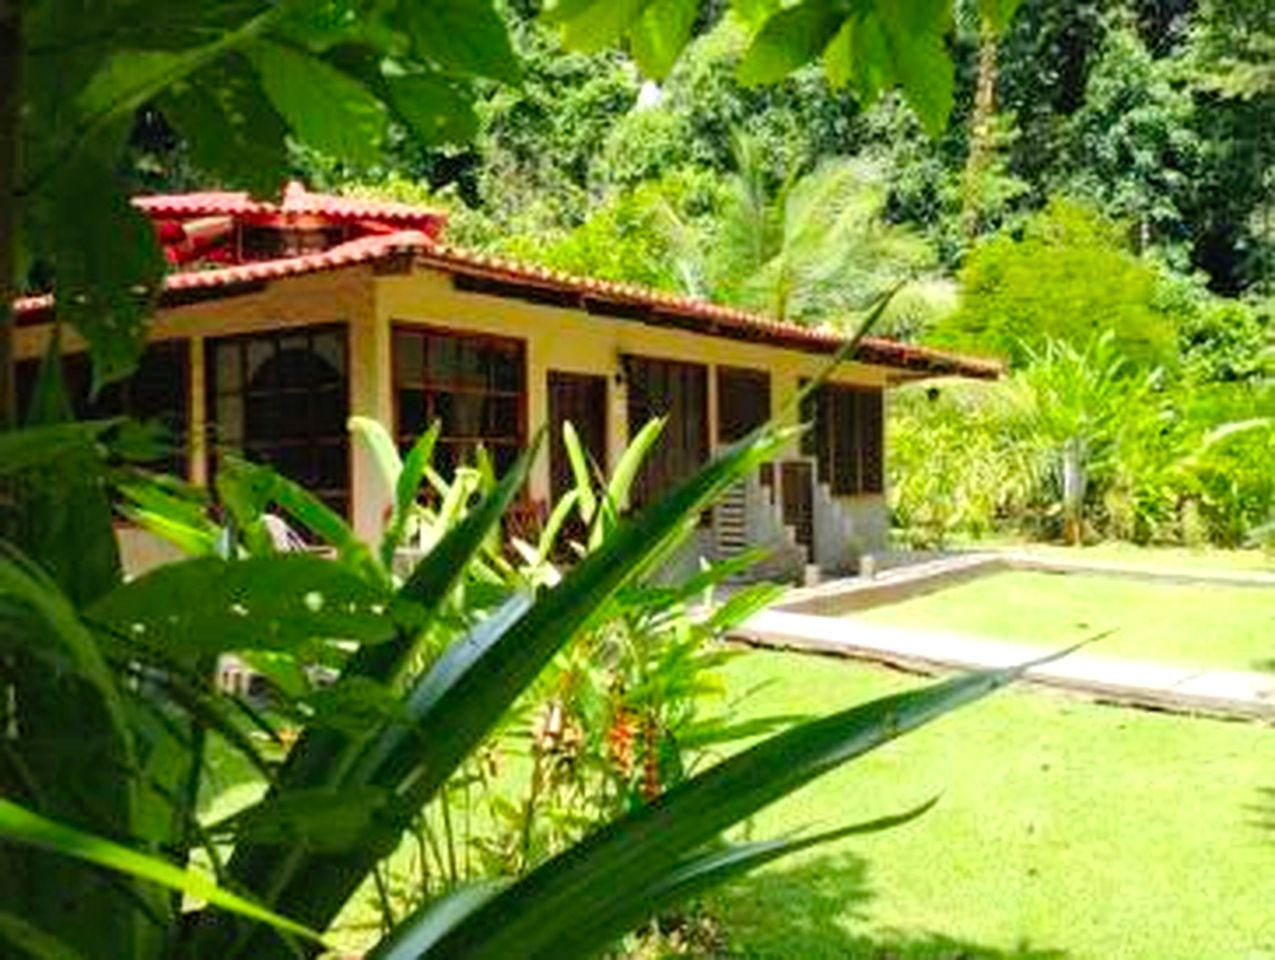 Cottages (Drake Bay, Puntarenas, Costa Rica)